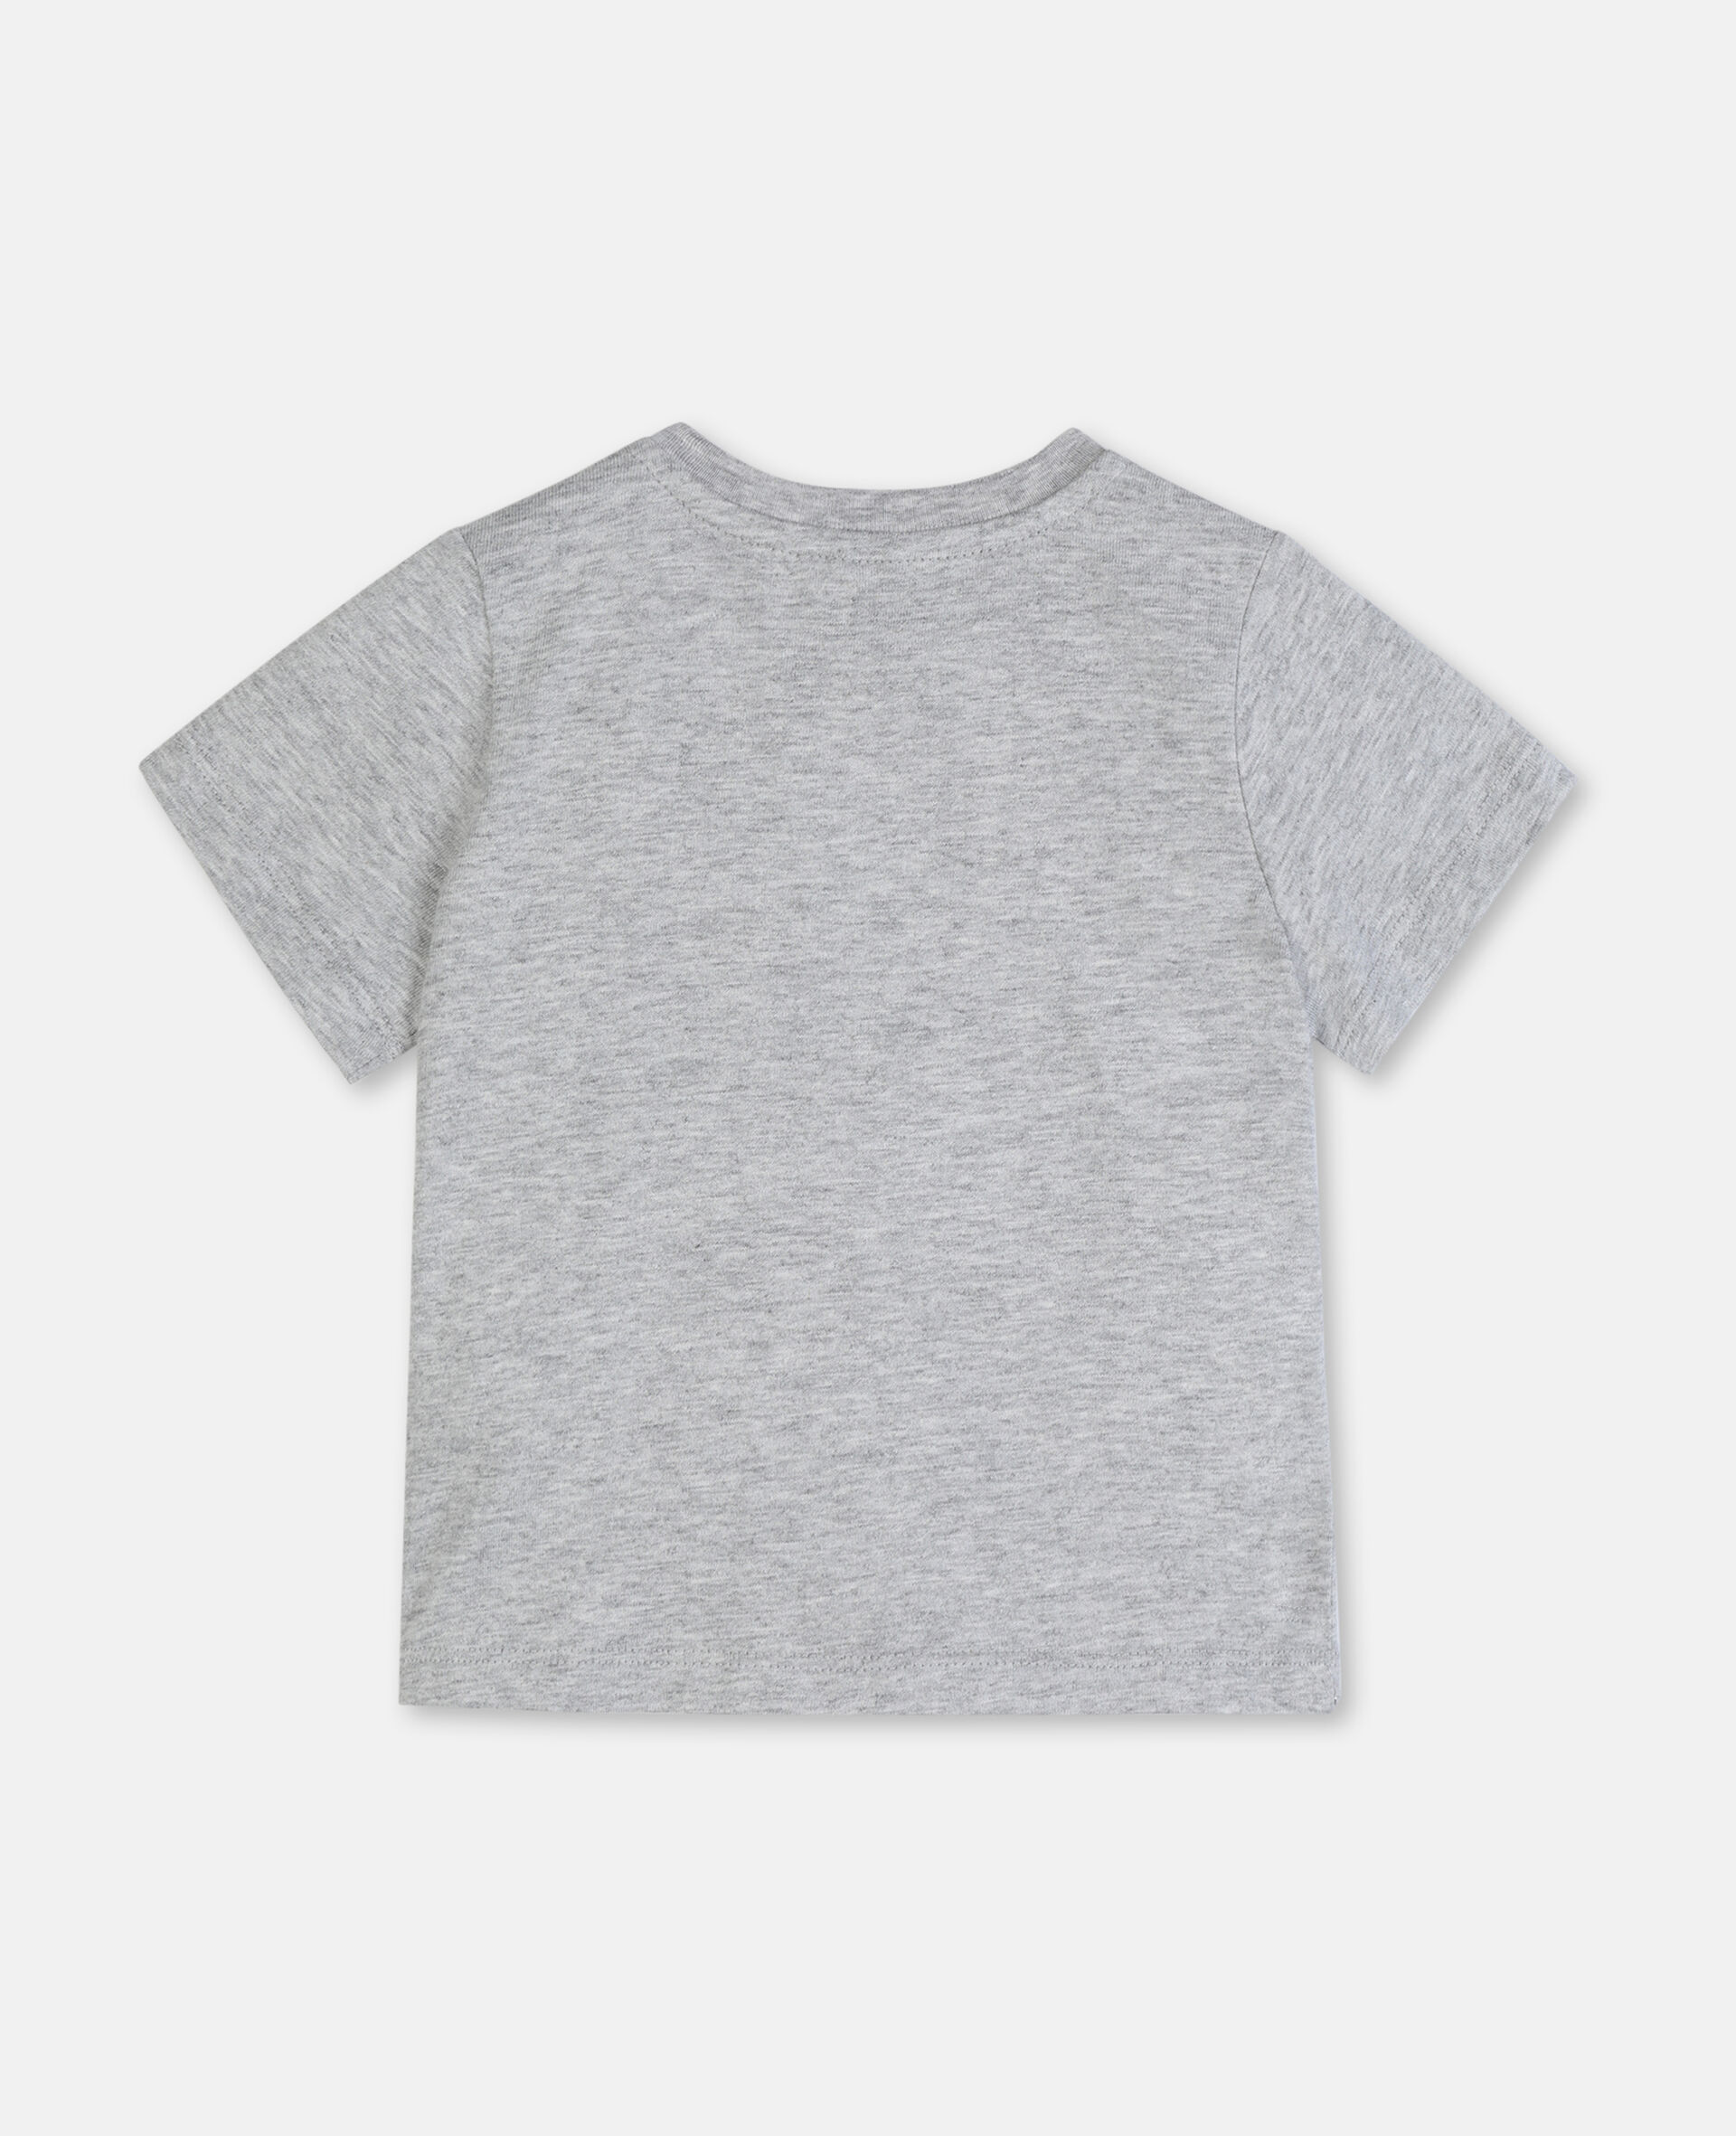 Paws Up Cotton T-shirt -Grey-large image number 3